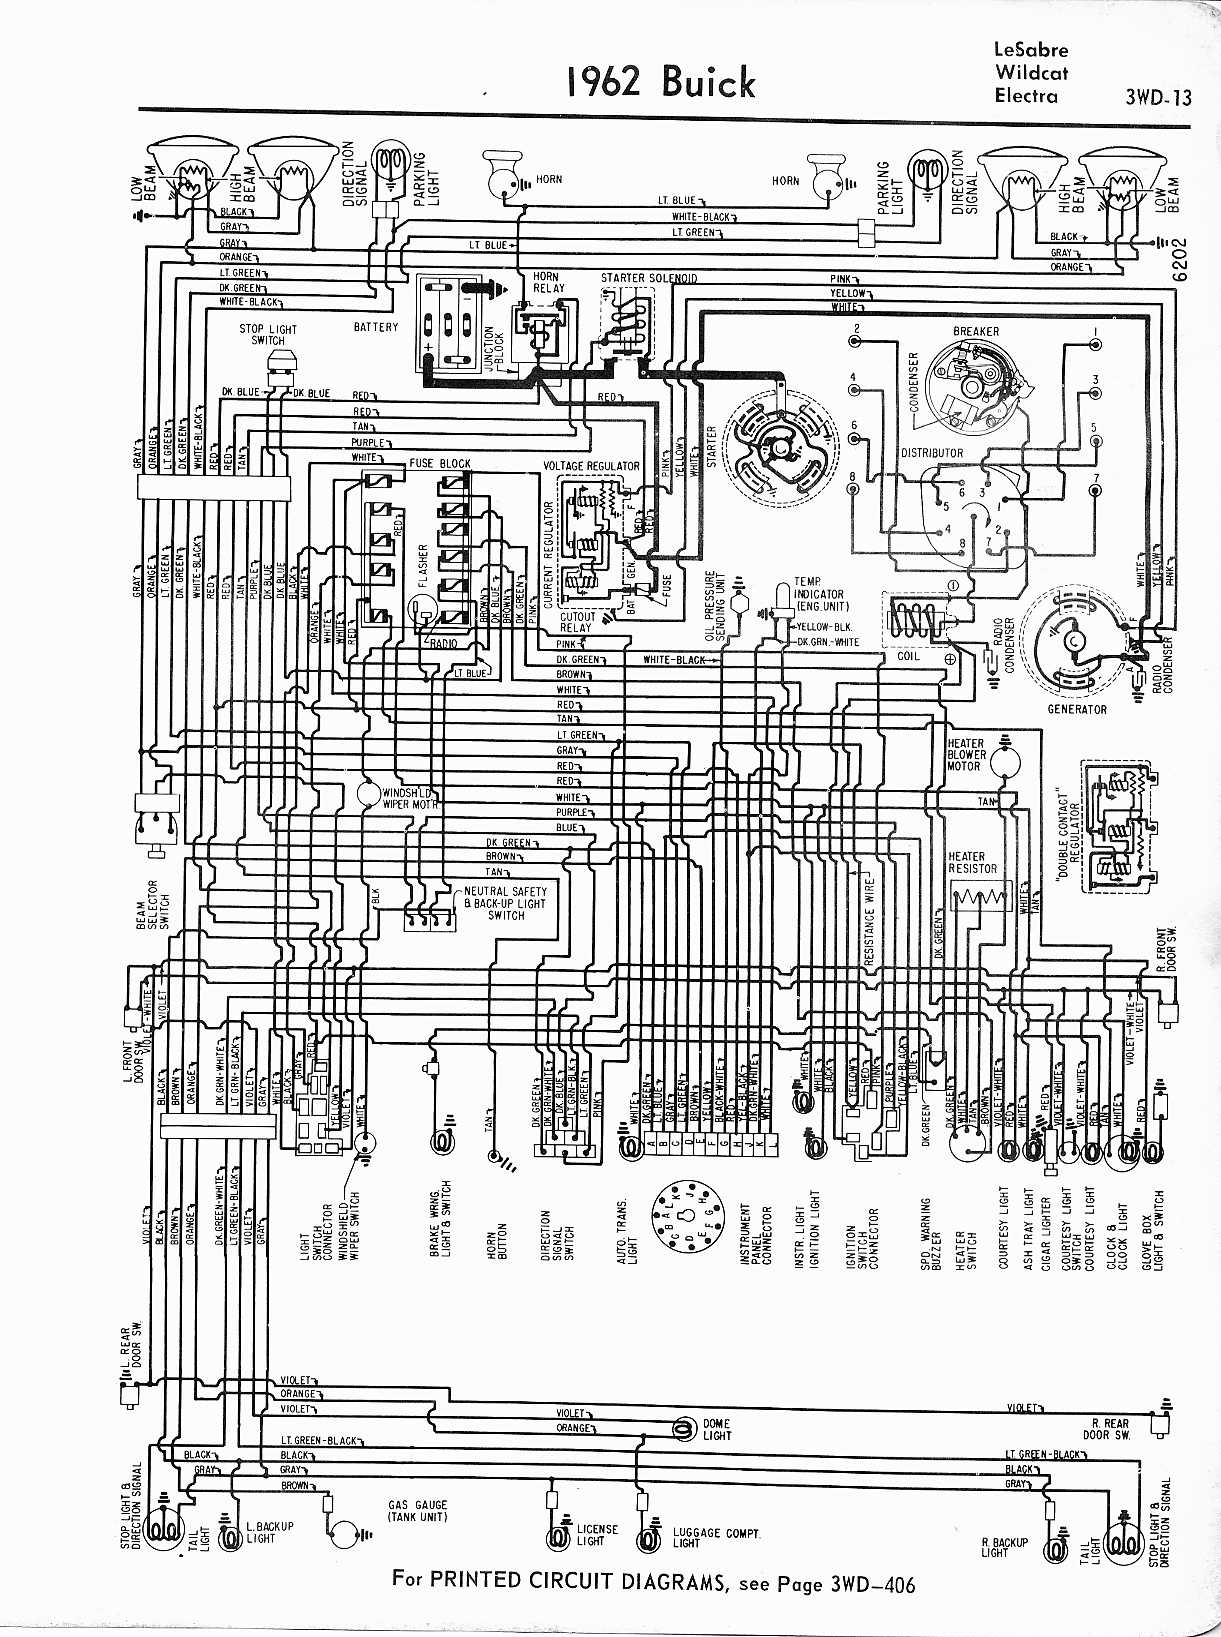 1956 Buick Wiring Diagram Worksheet And Stereo 1957 Harness Schematics Diagrams U2022 Rh Parntesis Co